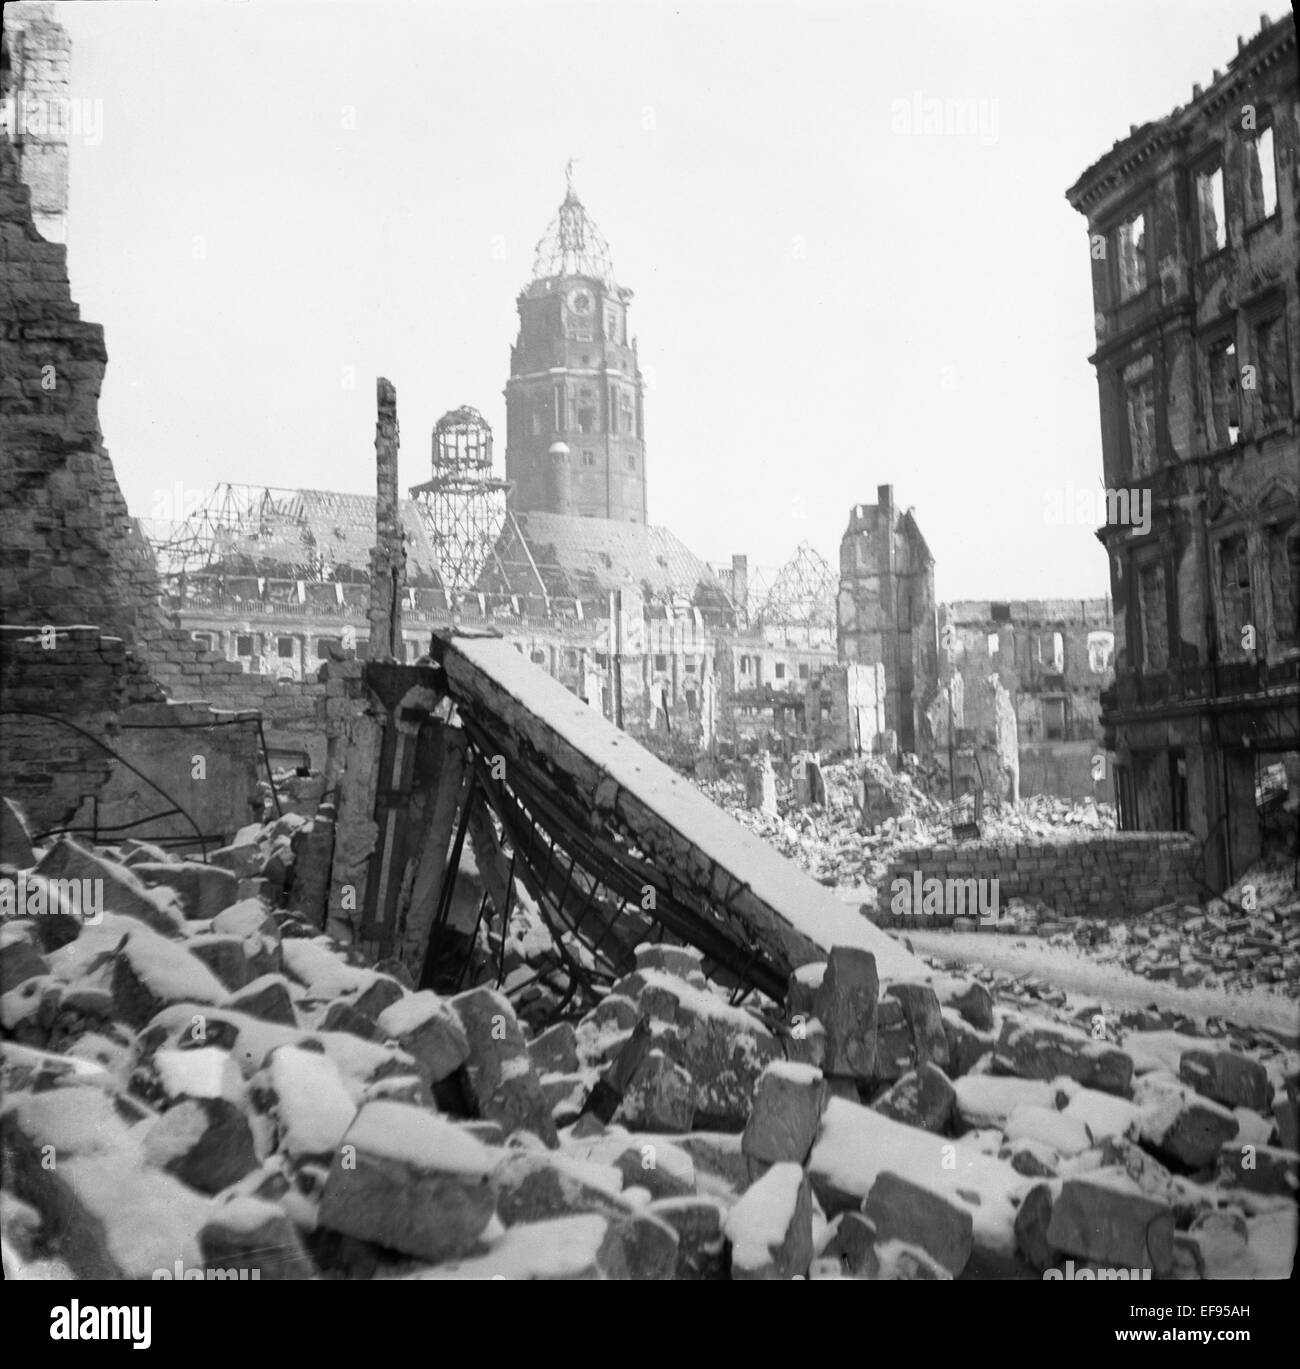 The photo by famous photographer Richard Peter sen. shows the view from South West to the ruins of the New City Stock Photo